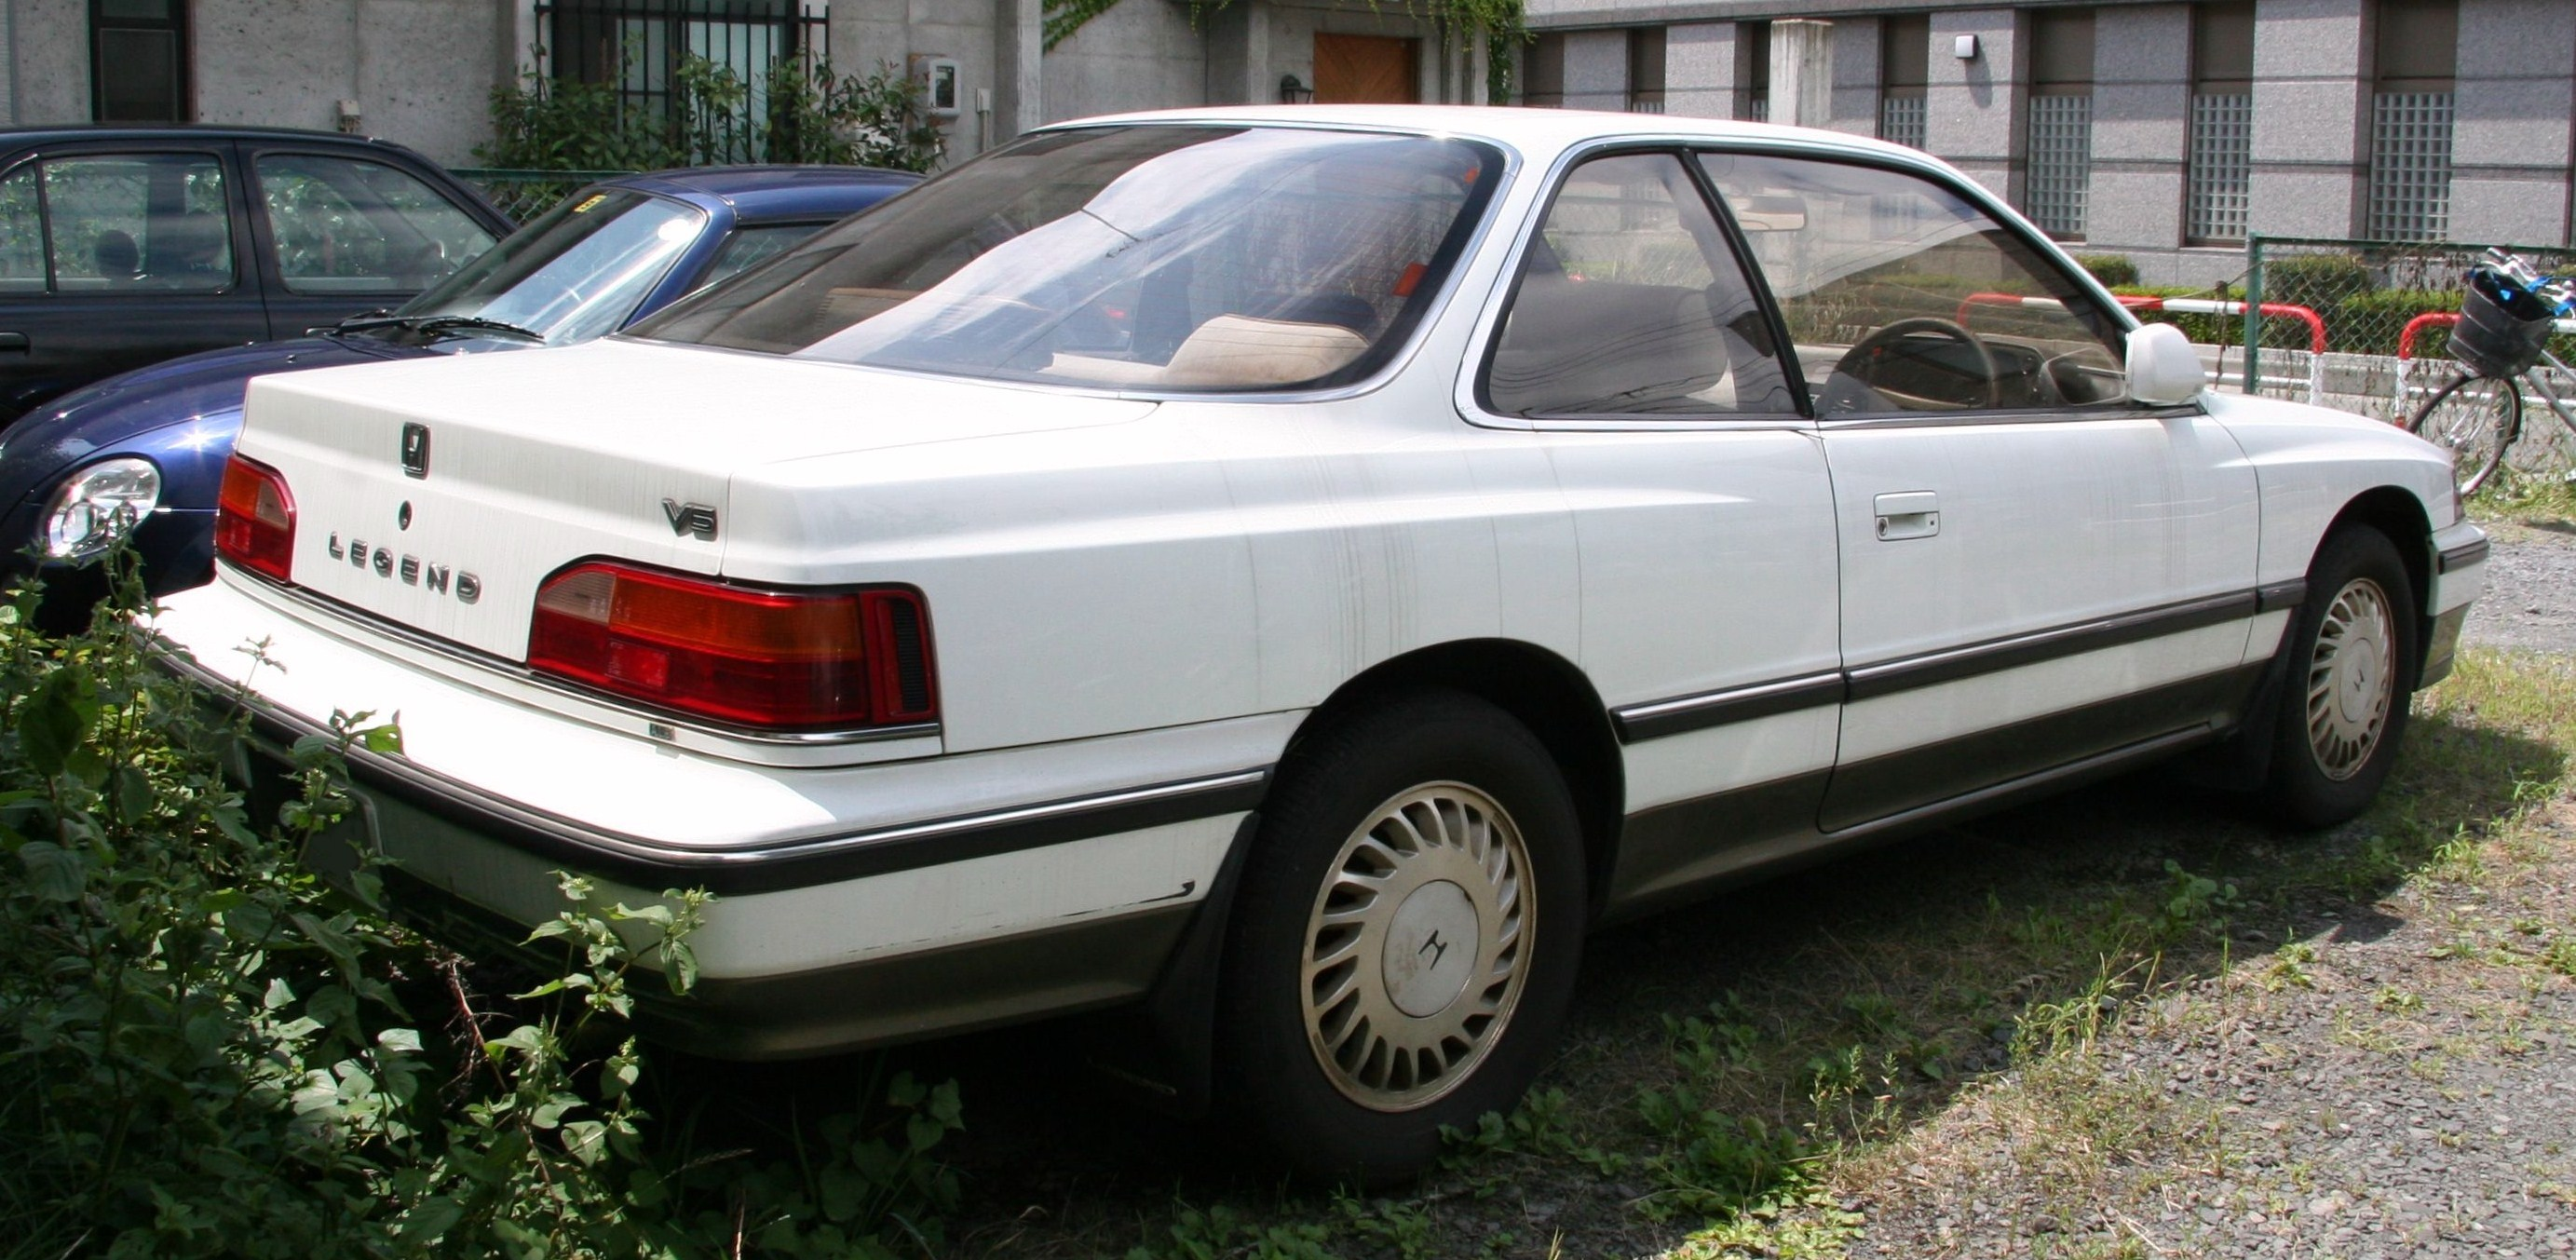 honda legend ii (ka7) 1990 models #9